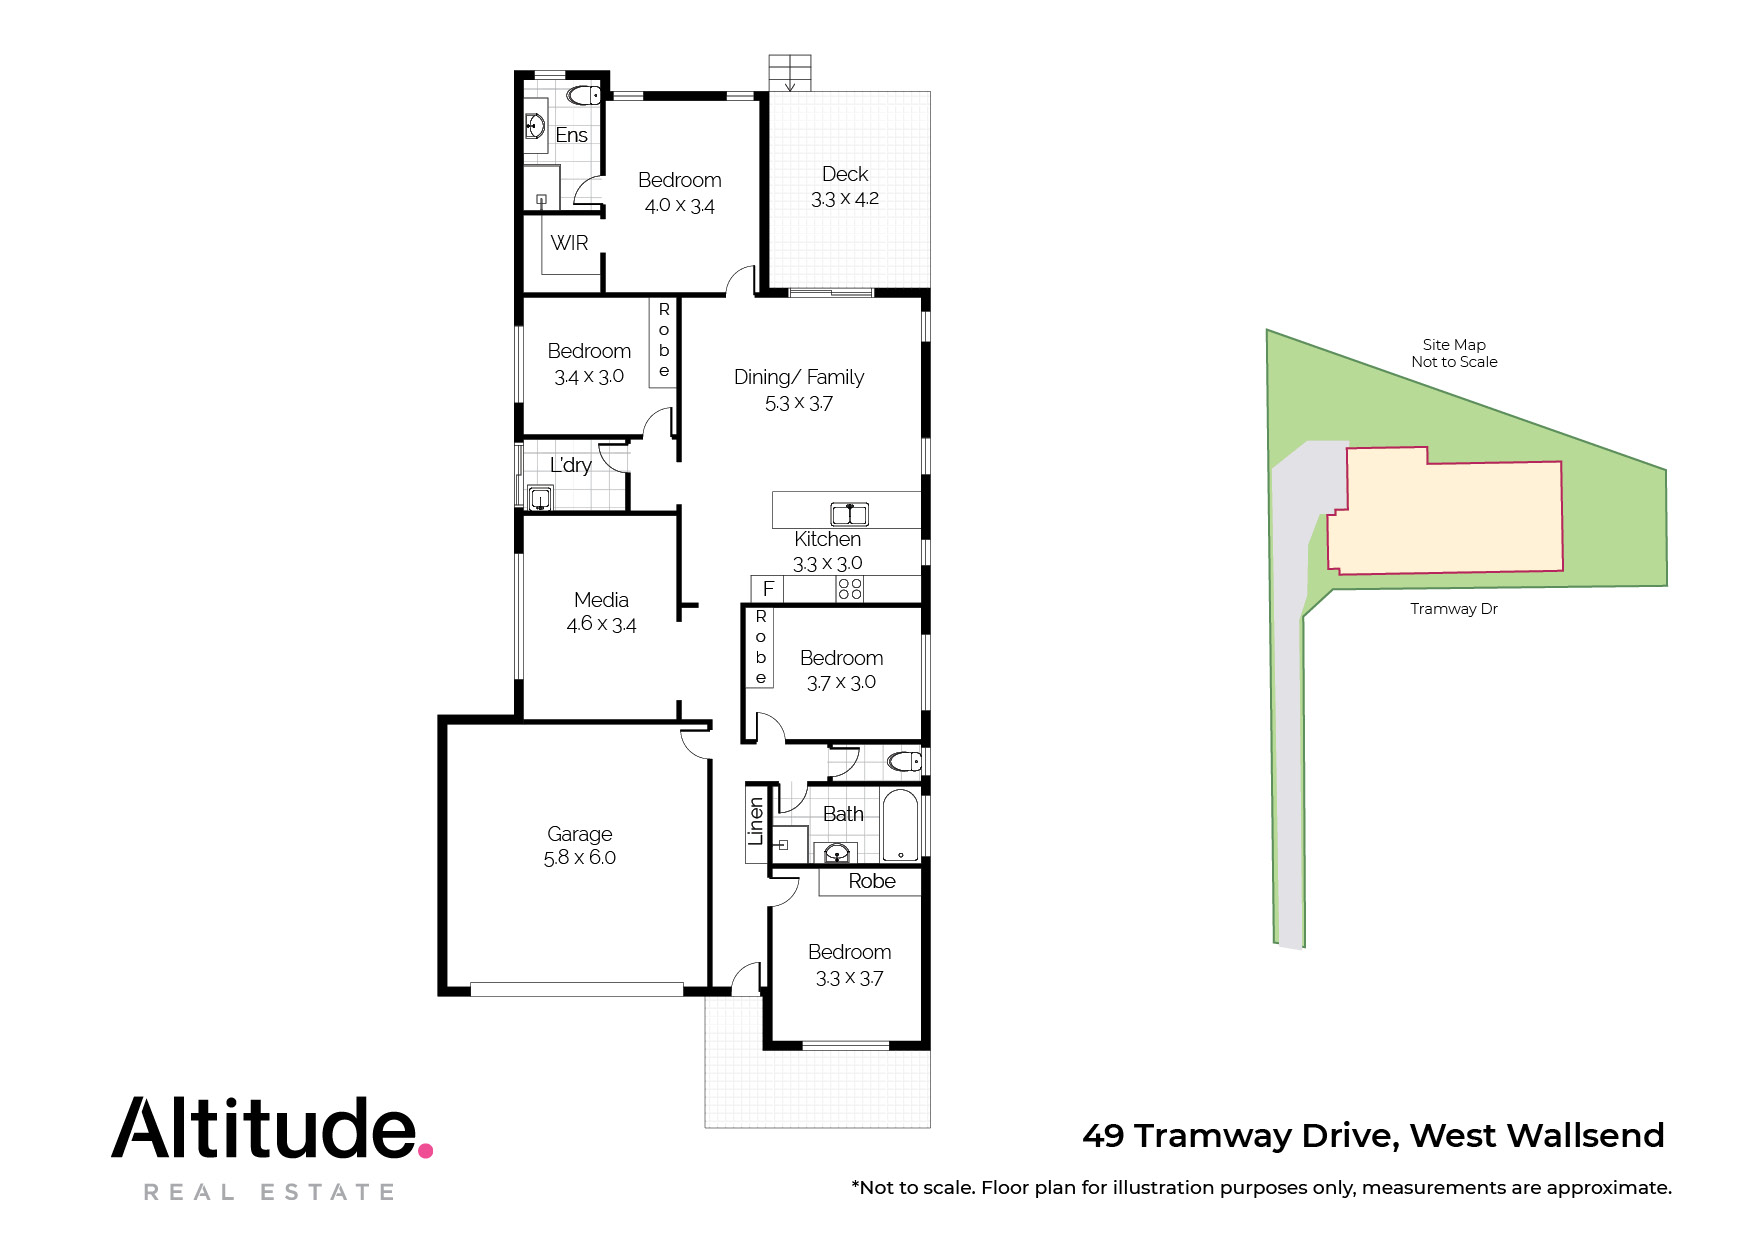 49 Tramway Drive, West Wallsend, NSW 2286